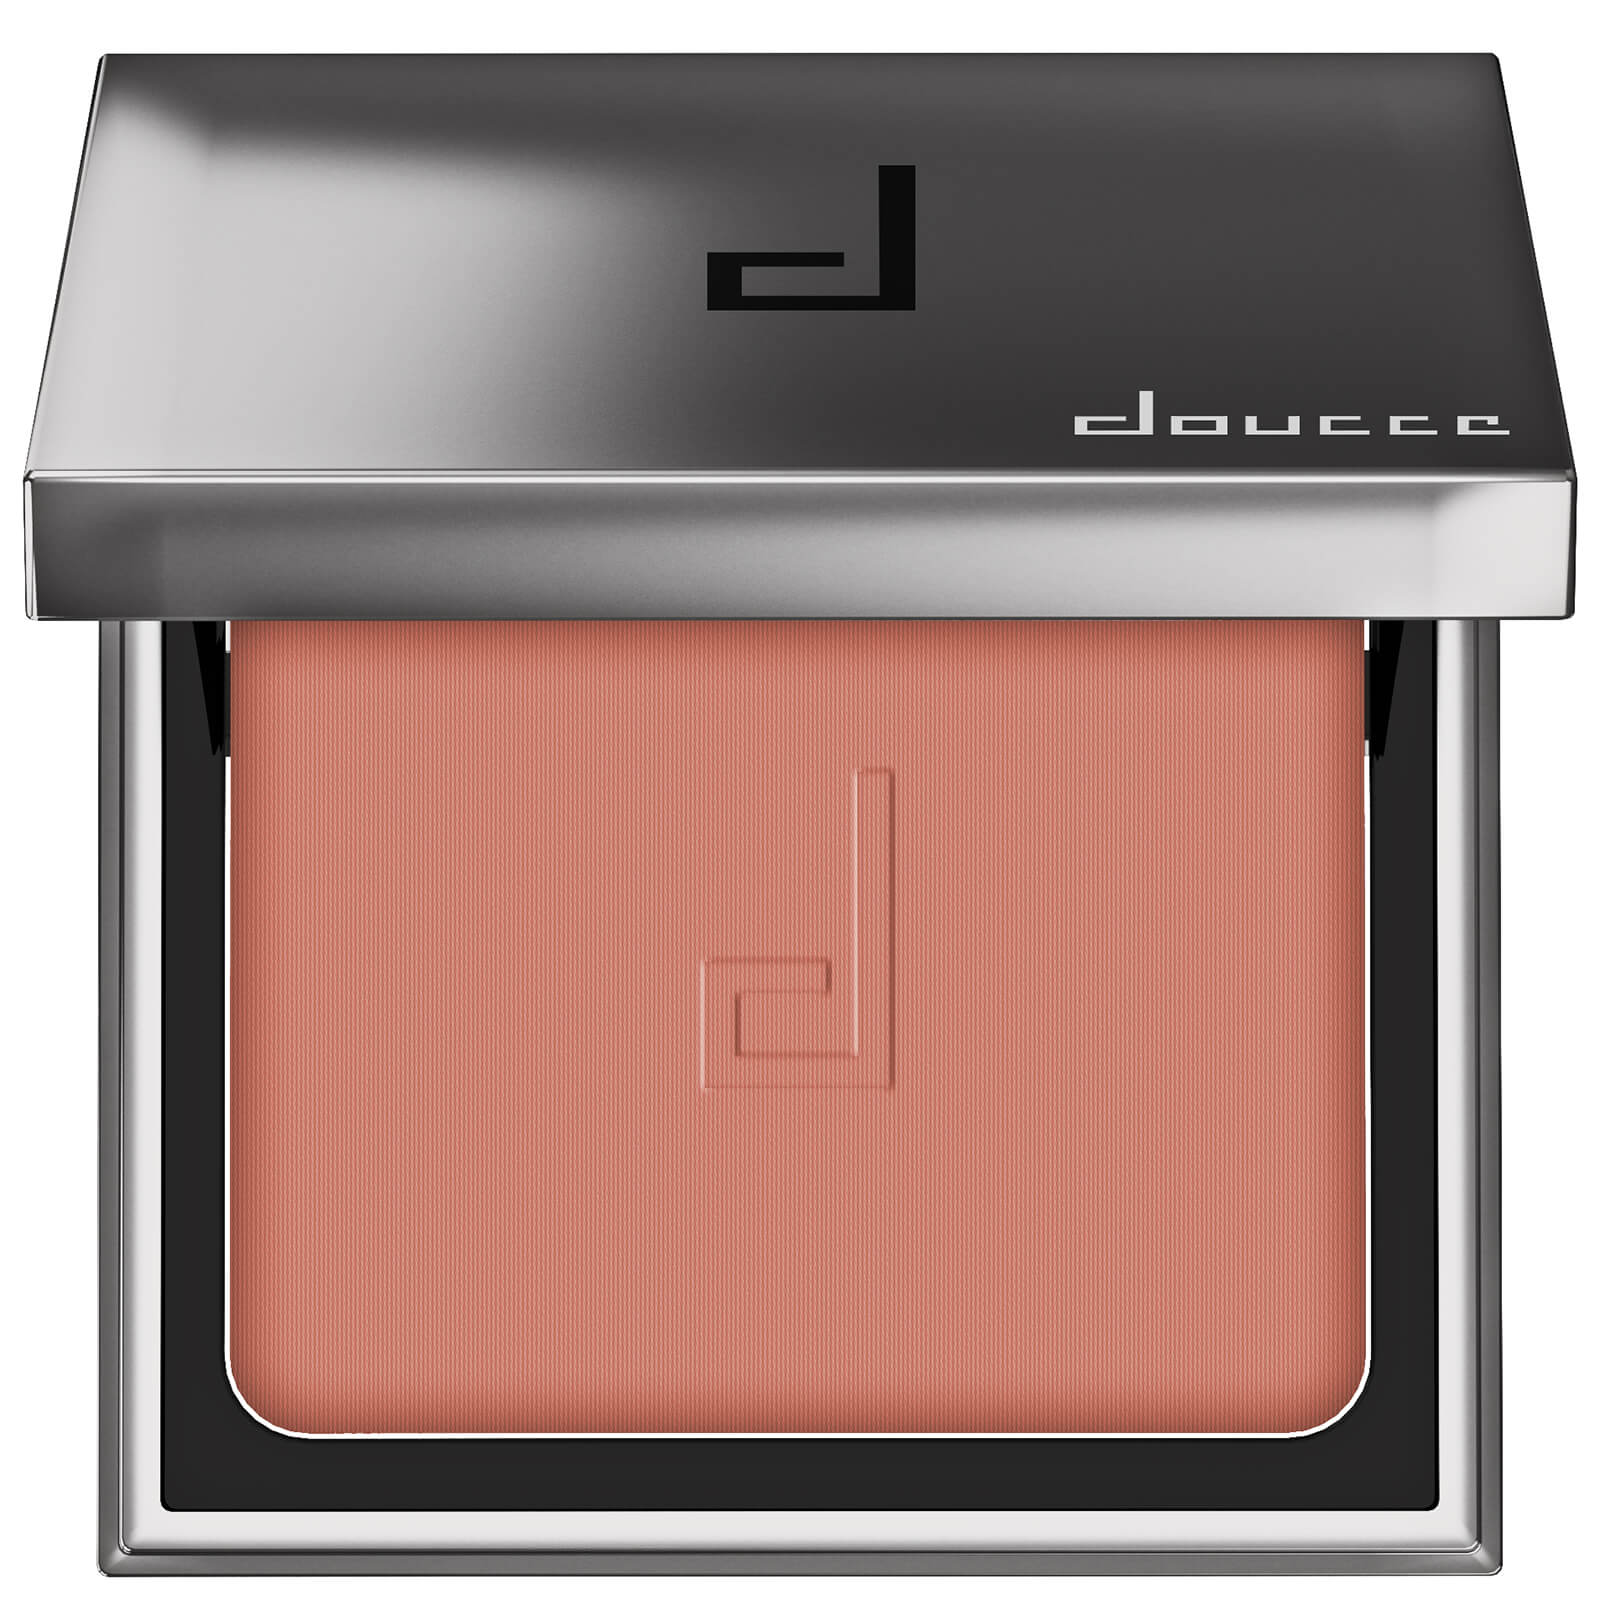 doucce Cheek Blush 8g (Various Shades) - So Good (64)